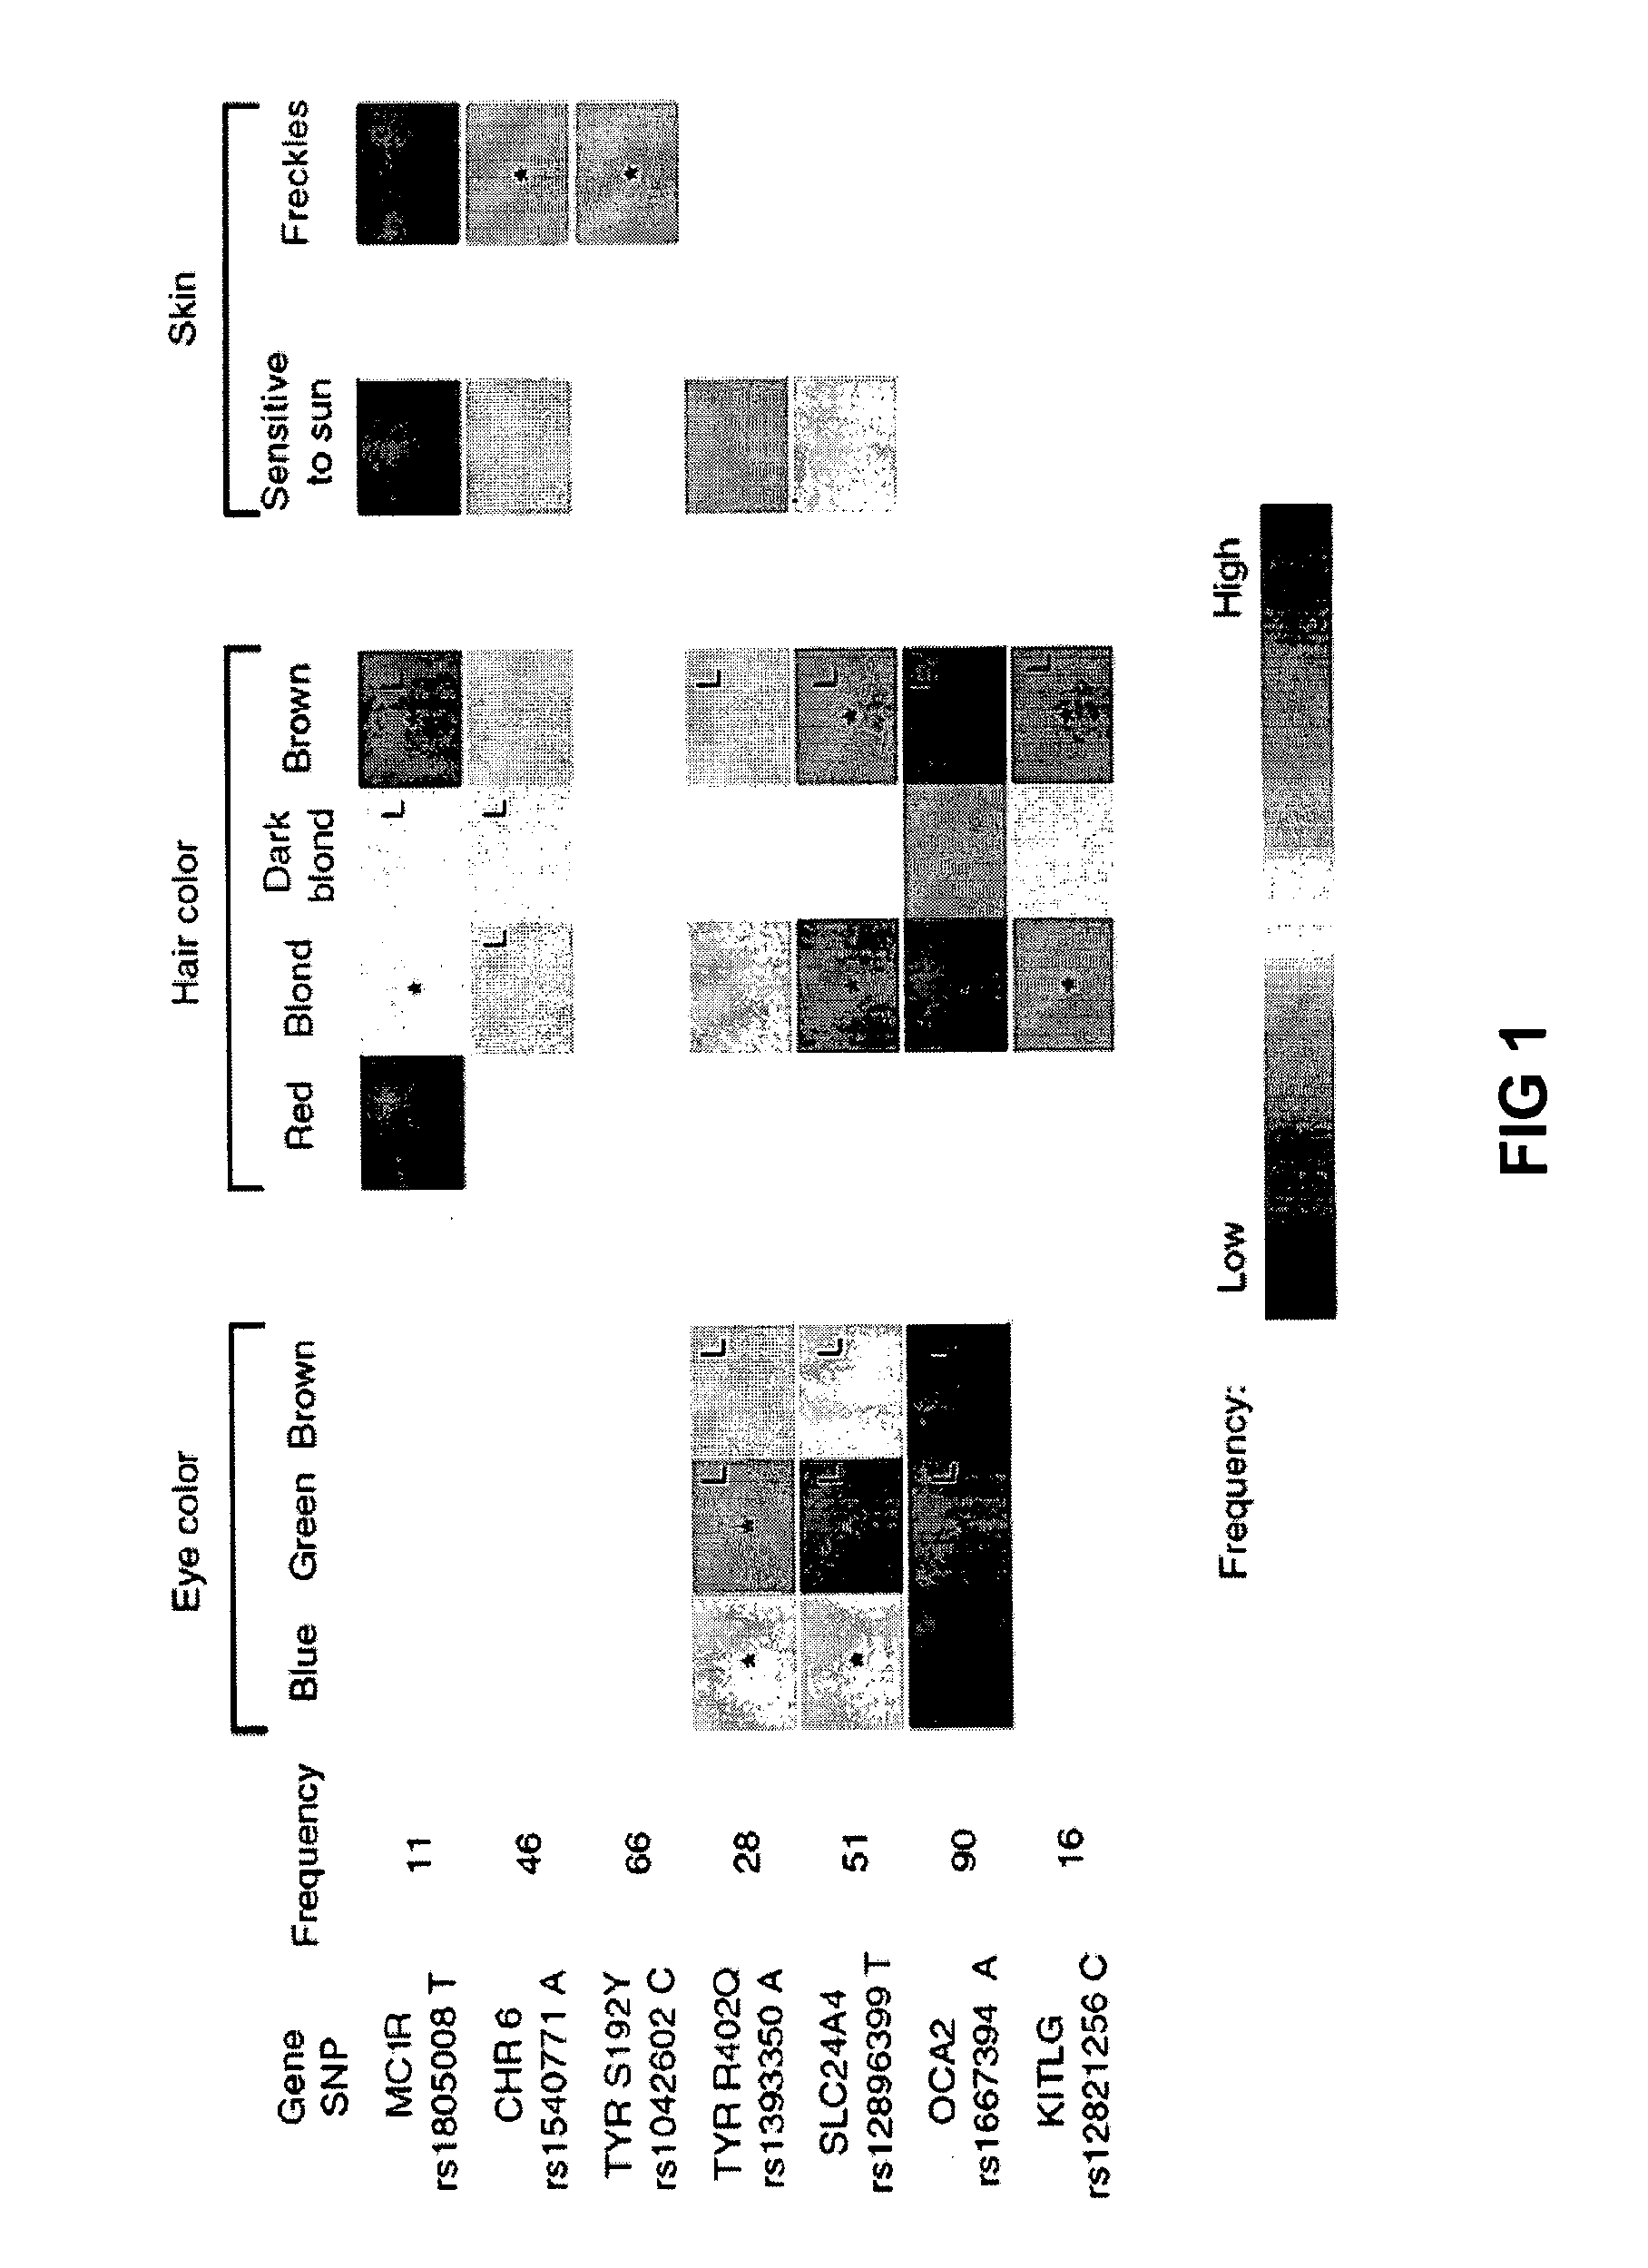 US20100216655A1 - Sequence variants for inferring human